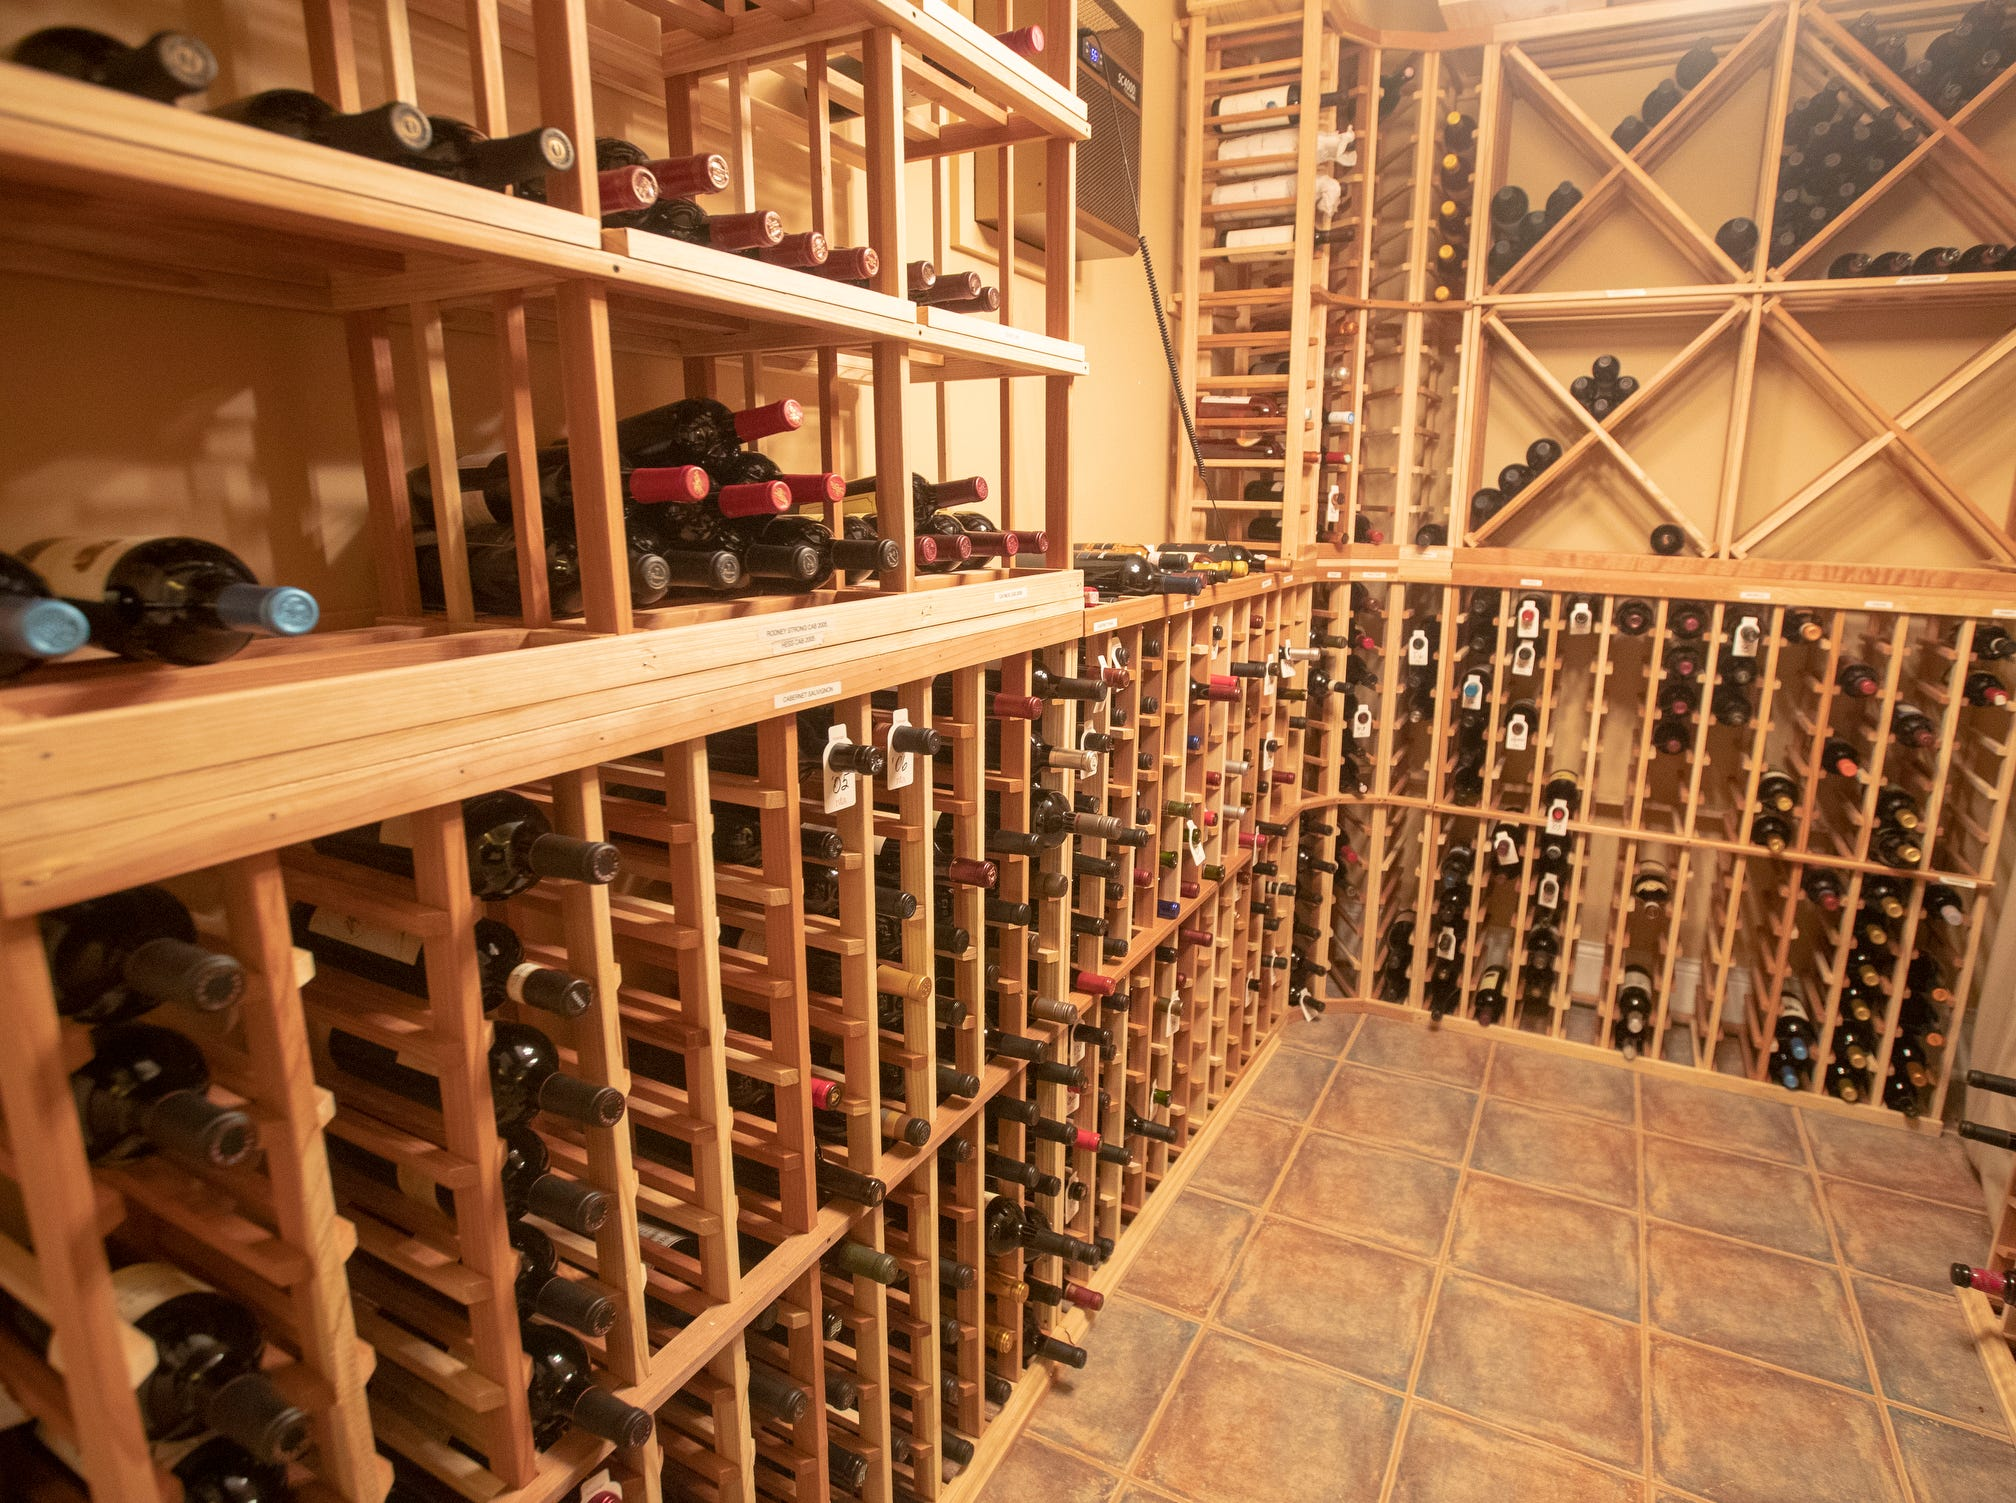 The wine cellar in the basement of a thirteen-year-old Victorian home in the Village of West Clay, Carmel, March 20, 2019. The house includes 16 rooms with five bedrooms, 8,348 square feet, and is listed at $1.275 million.